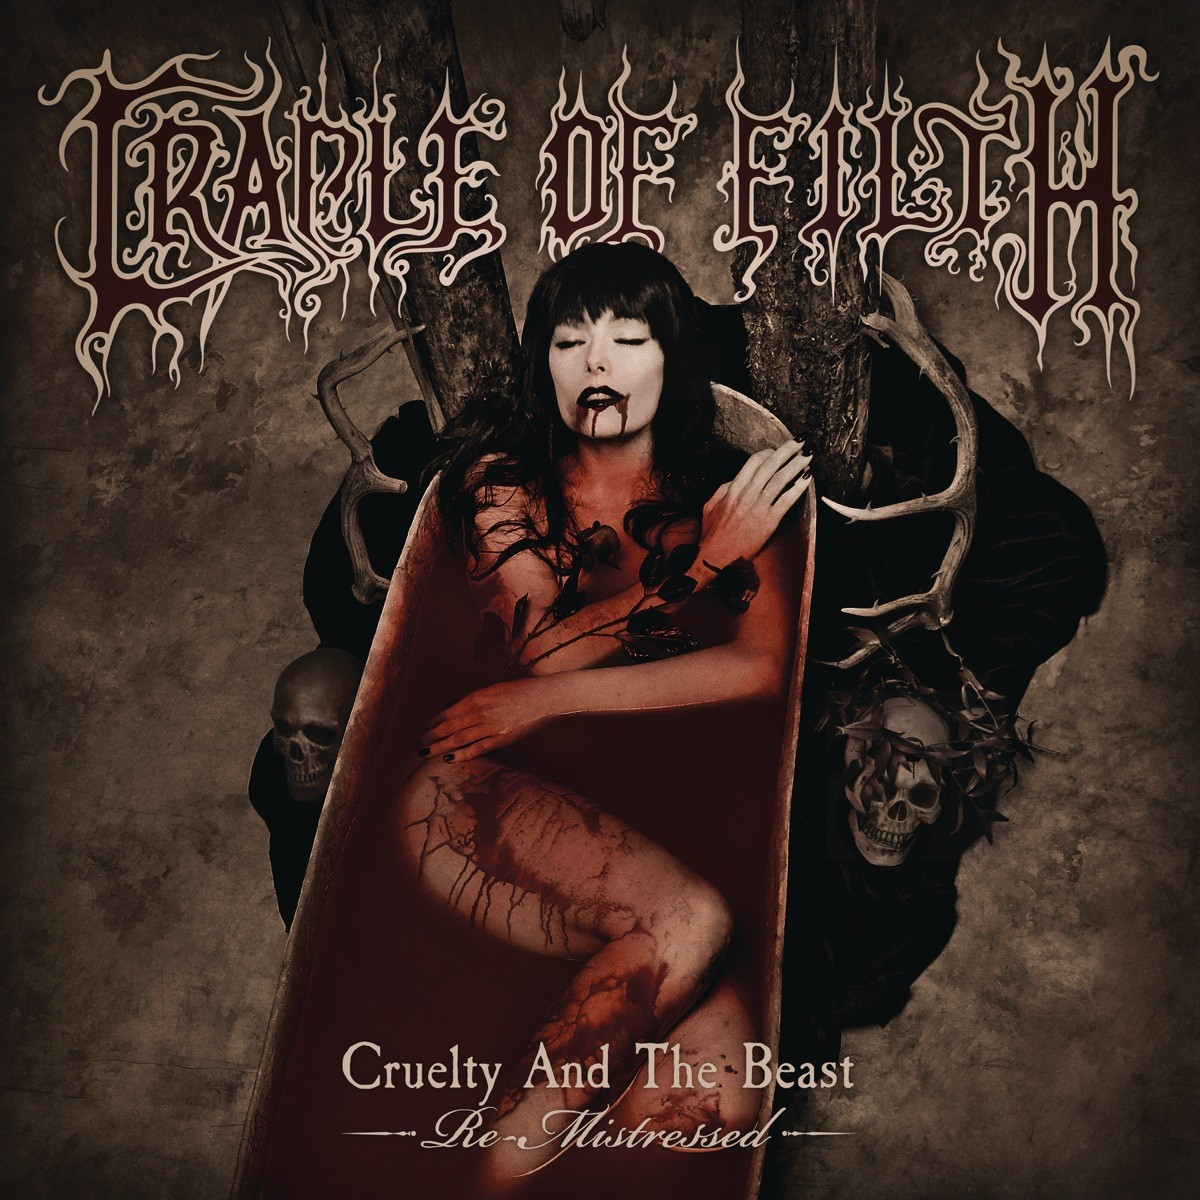 Cradle Of Filth - Cruelty and the Beast (Re-Mistressed) VINYL - 19075880881